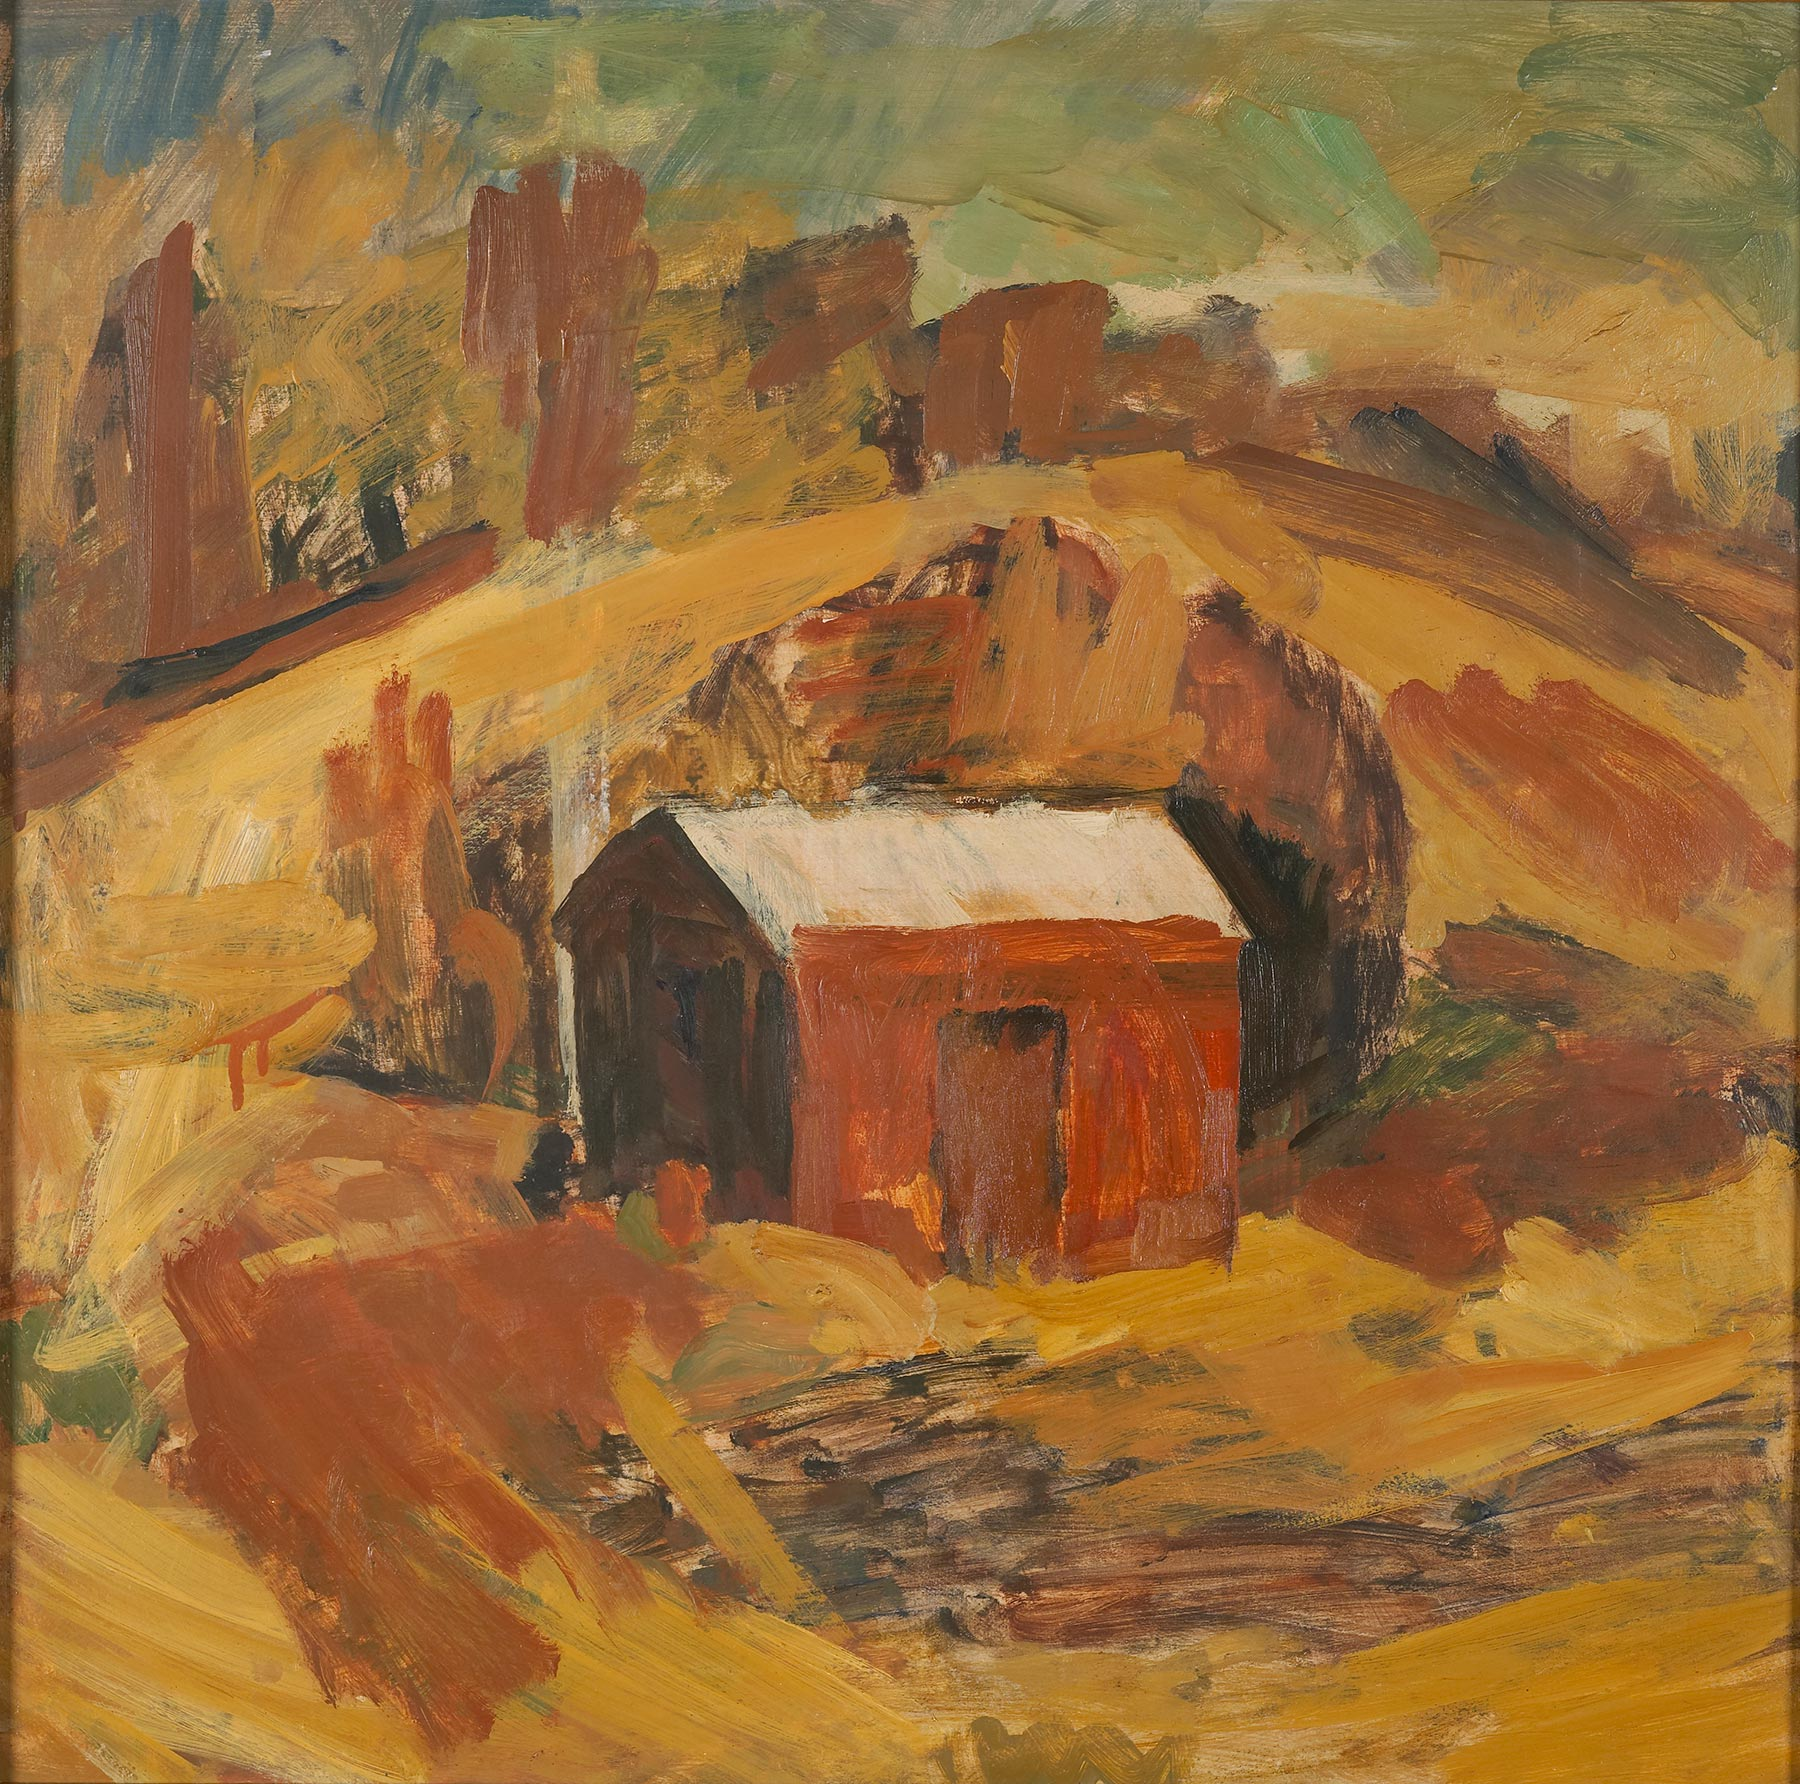 Oil painting of shed